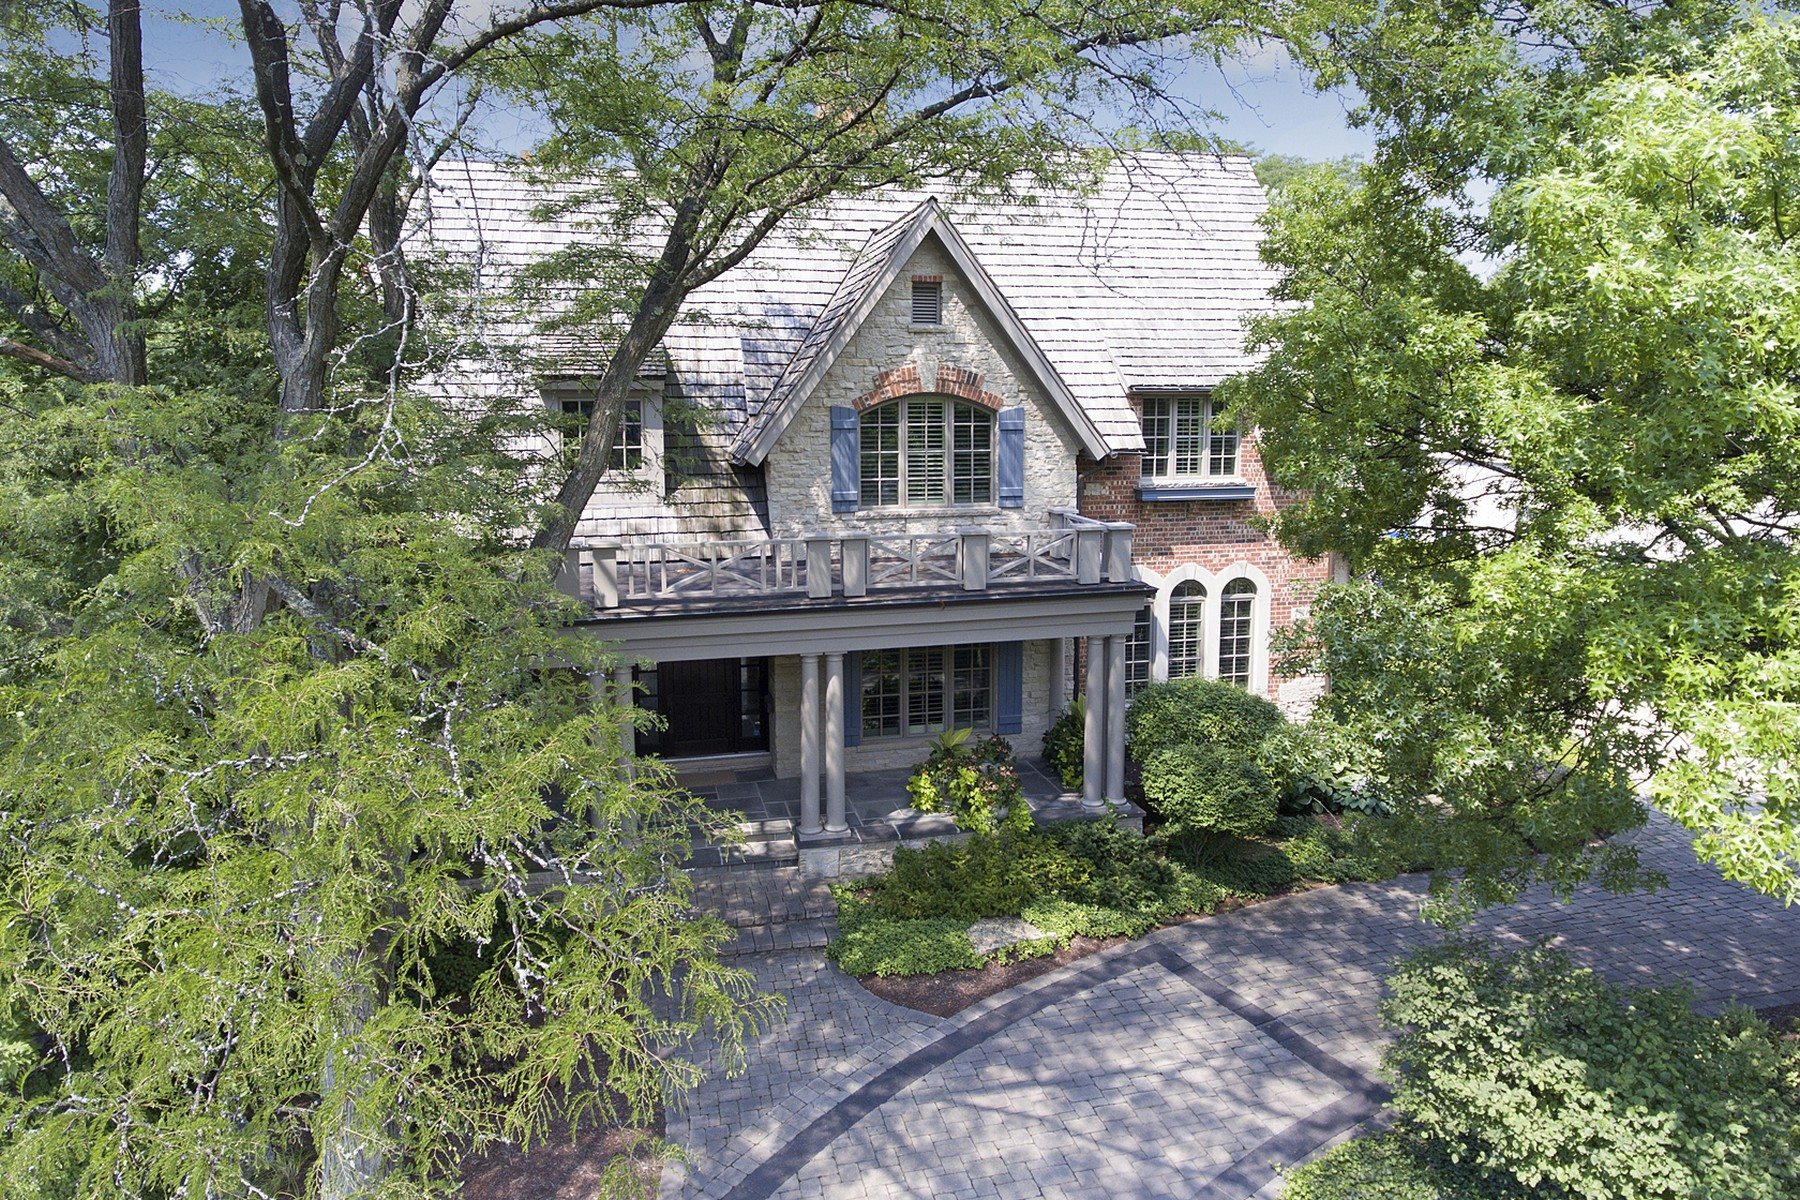 Single Family Home for Sale at 736 Cleveland Road Hinsdale, Illinois, 60521 United States